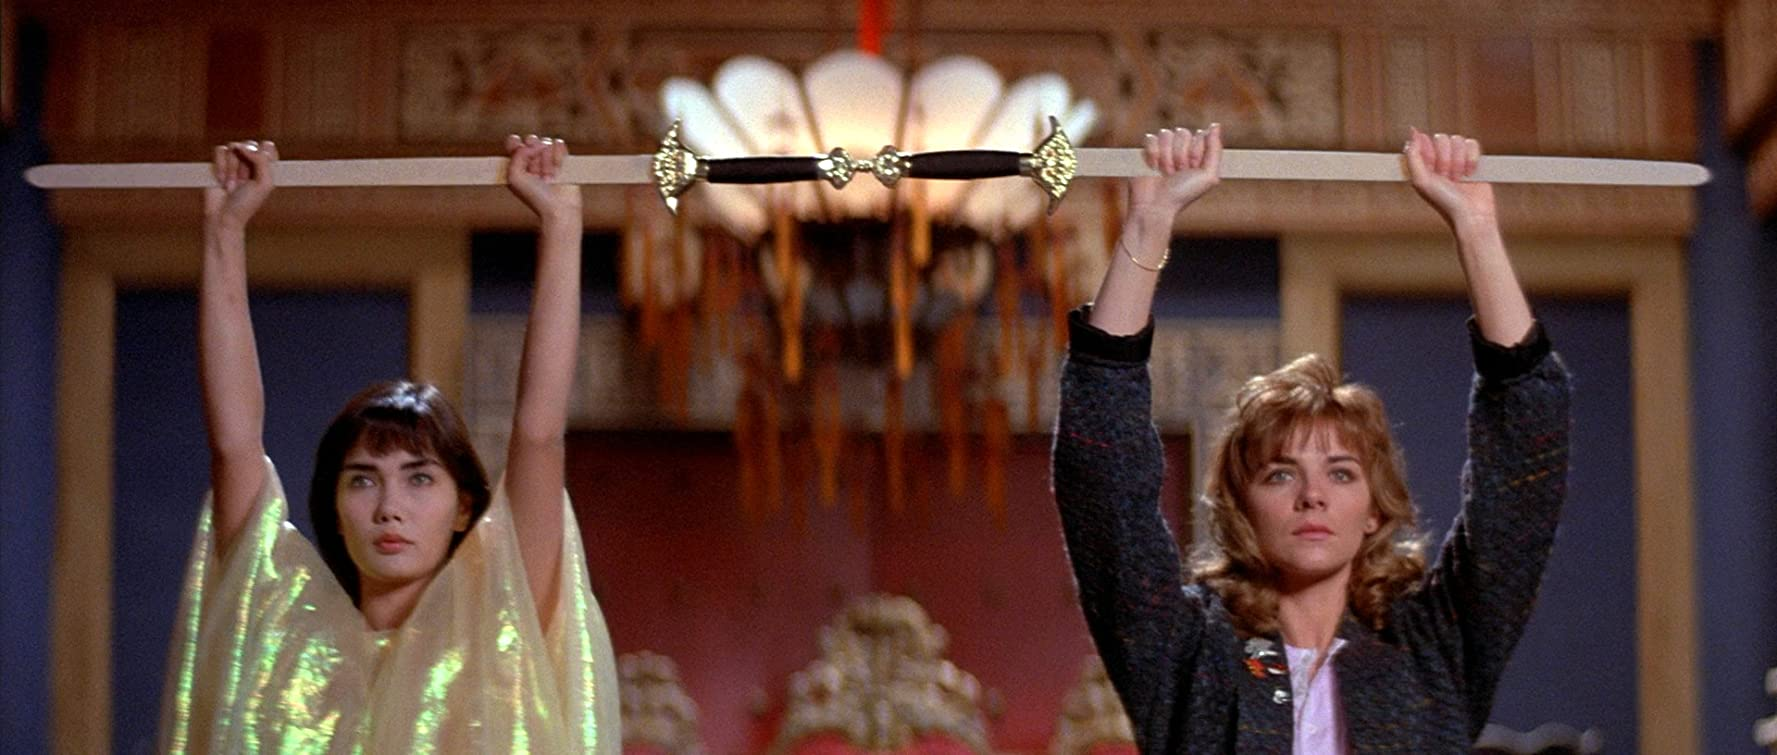 Kim Cattrall and Suzee Pai in Big Trouble in Little China (1986)